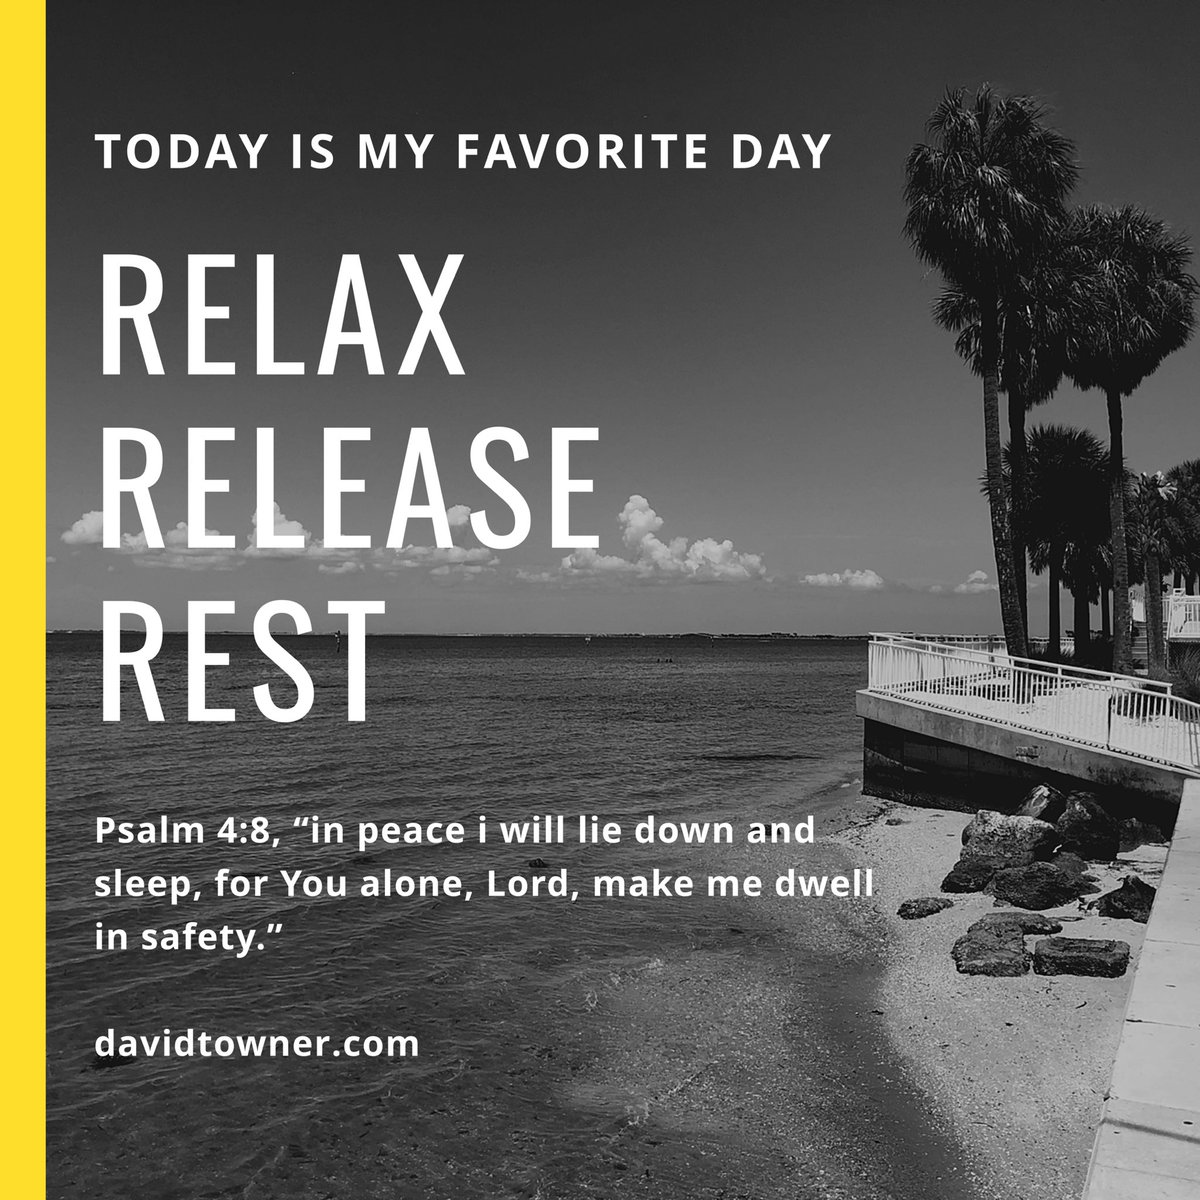 To lead well we need proper rest. I've found resting in and meditating on the Lord adds an extra measure of peace. #lead #rest #leadership  #church #jesus #character #leaders #neversettle #positivechange #success #relax #release #timfd #TIMFD<br>http://pic.twitter.com/JJG7kg3Ncq